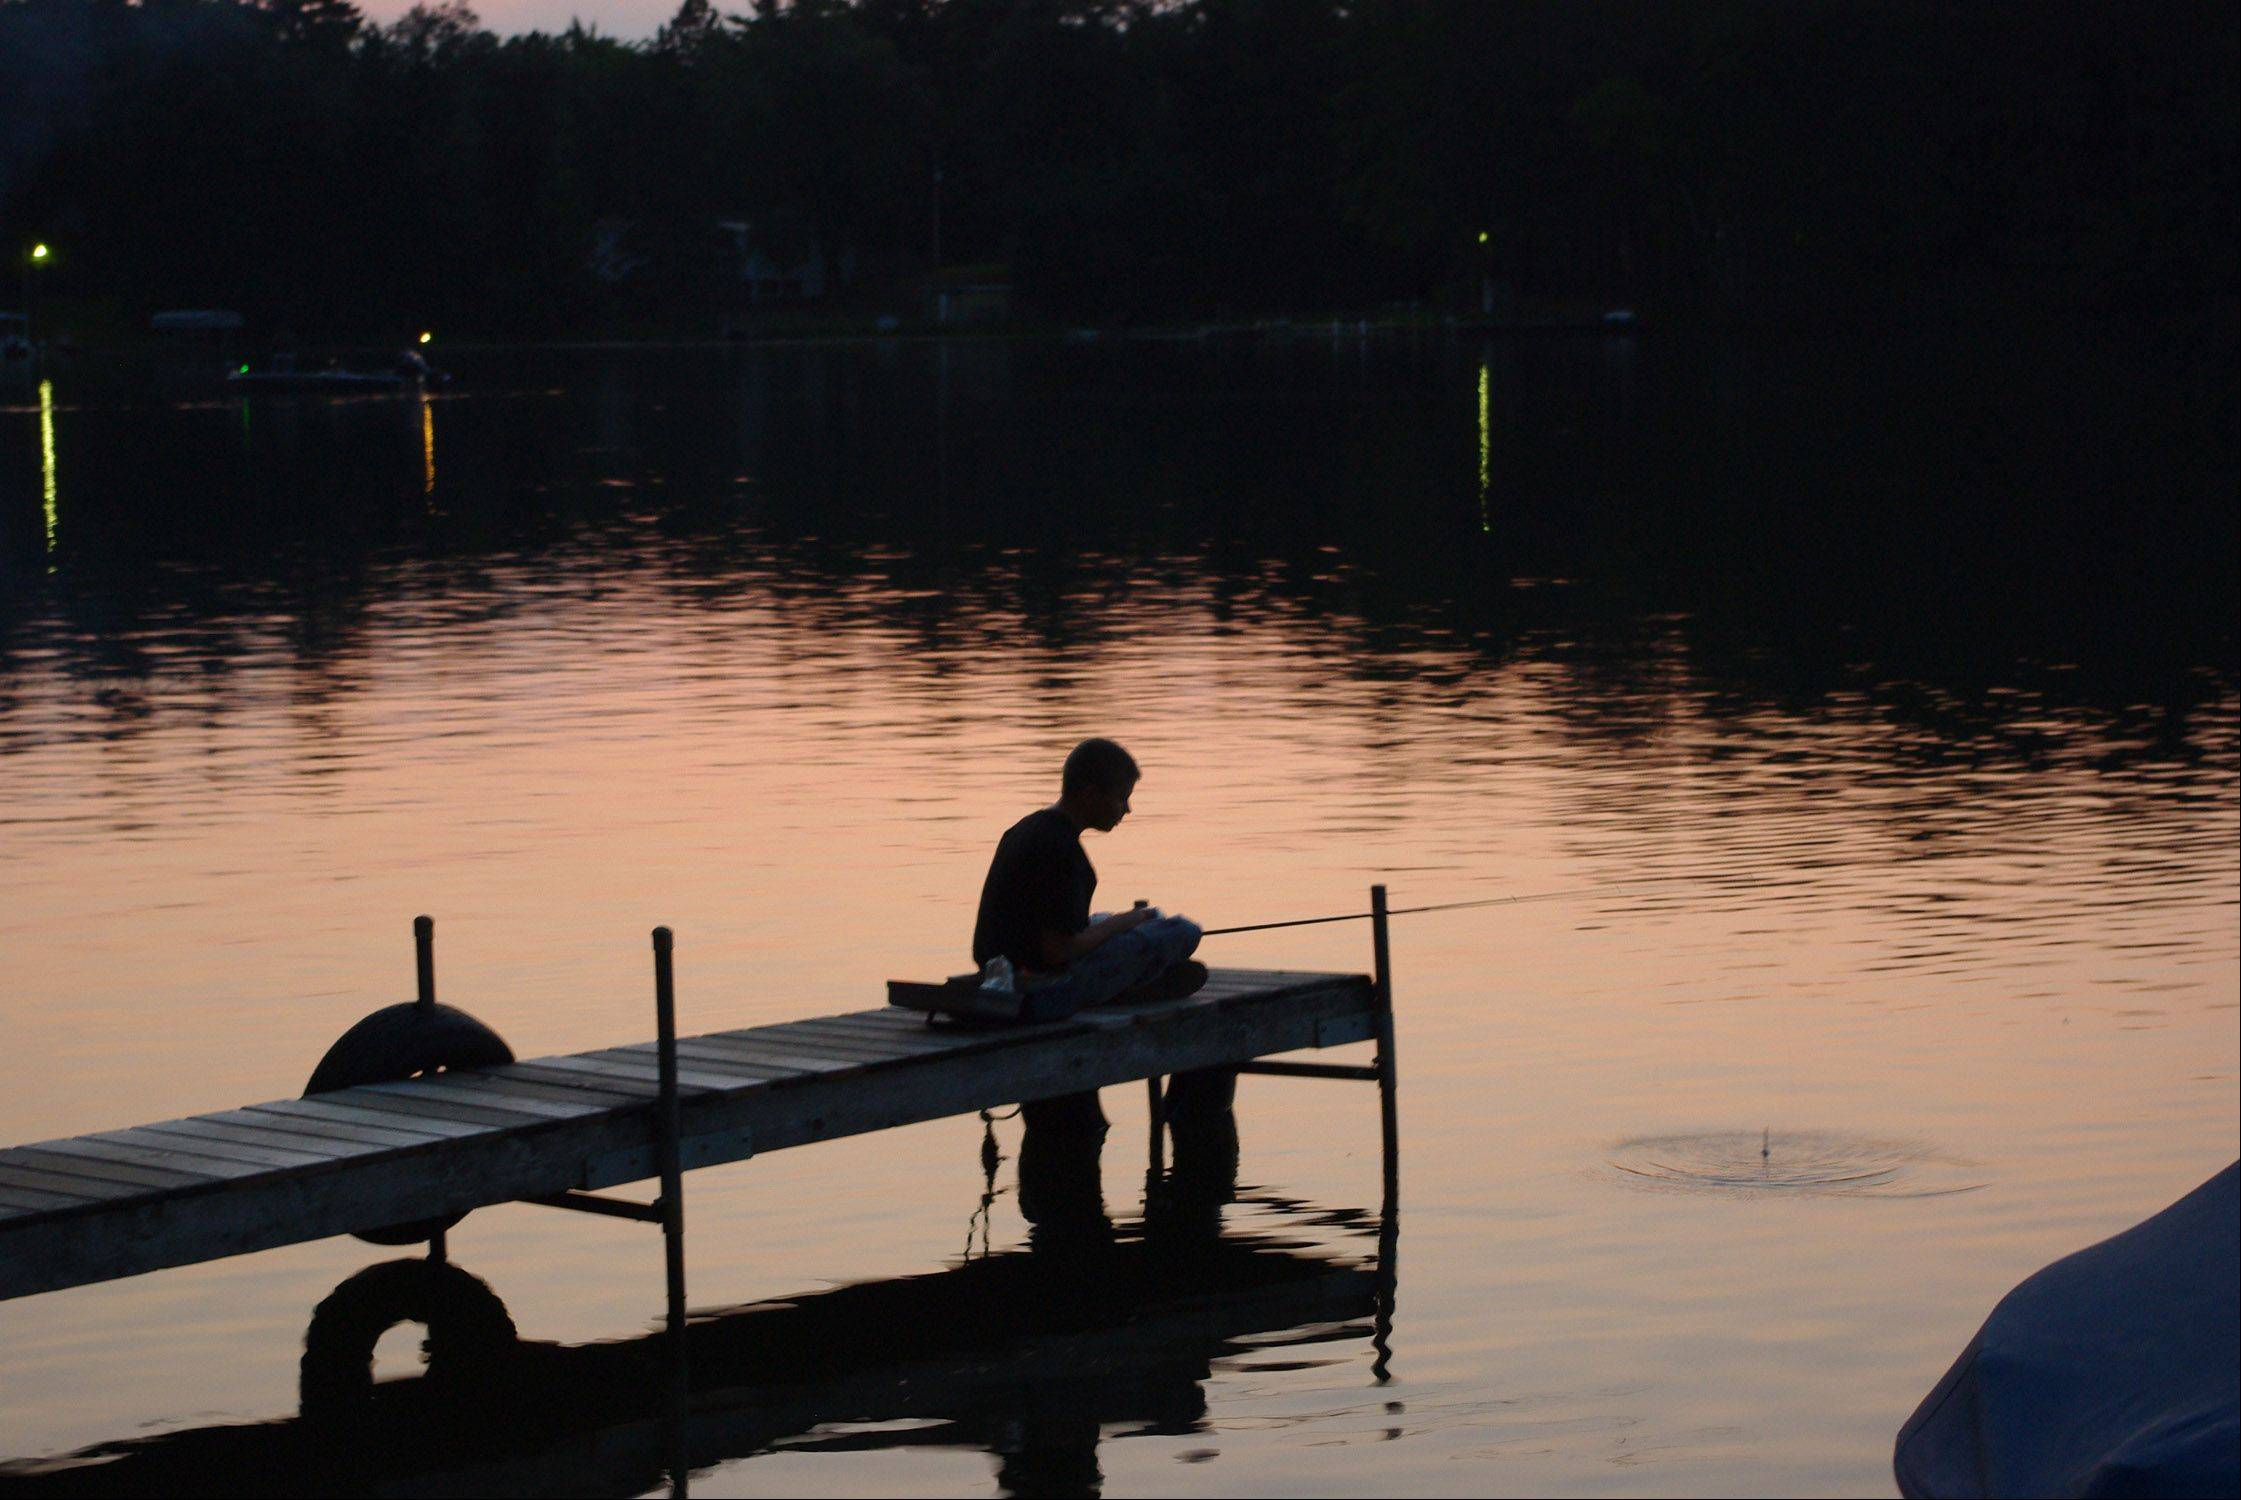 Aric Jones chills out while fishing on Little Saint Germain Lake in Wisconsin while on vacation in 2011.